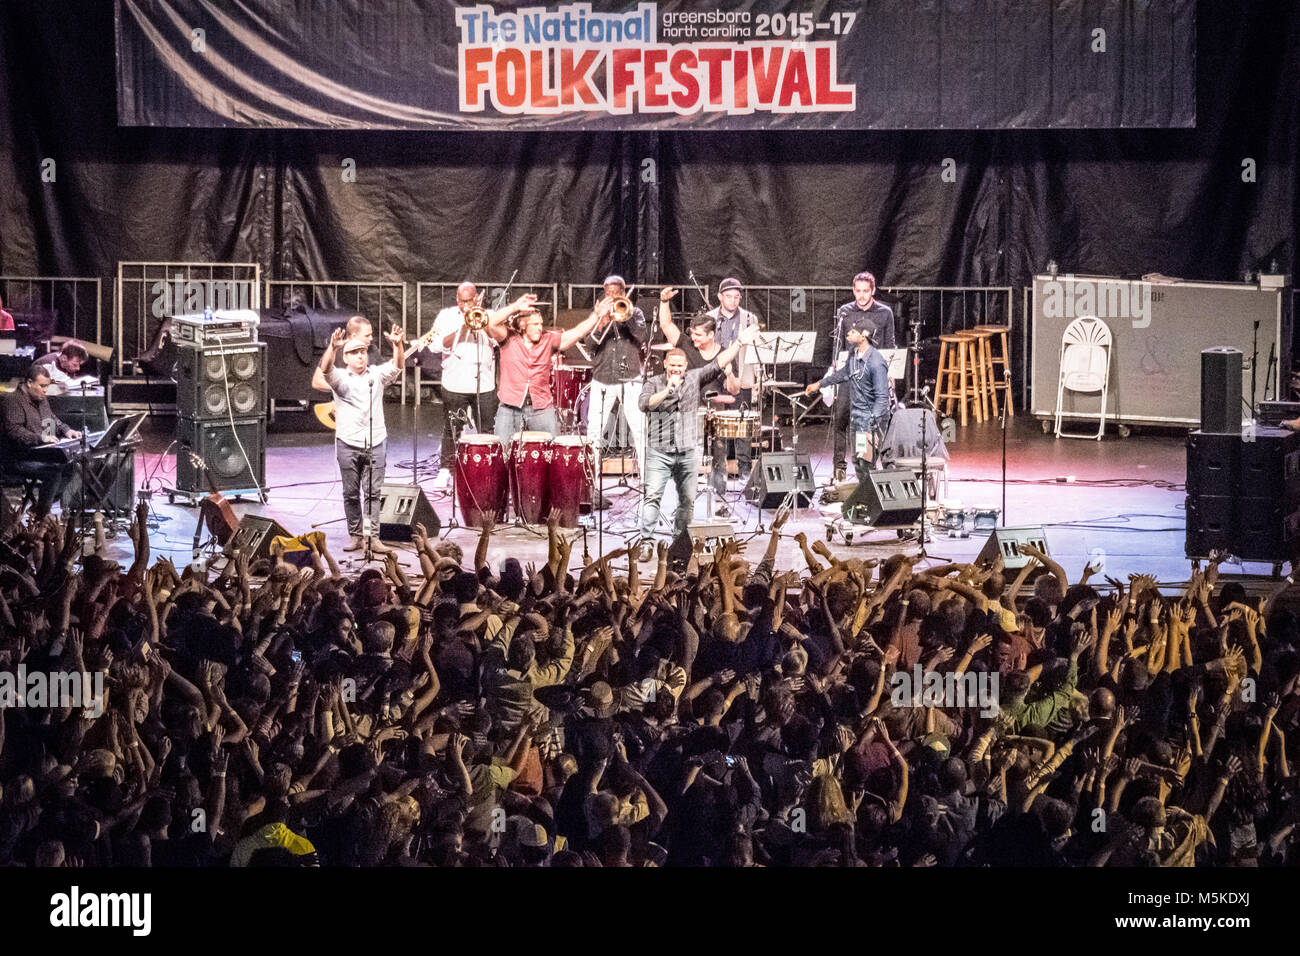 Crowd goes crazy for fast paced performance by Orquesta SCC at National Folk FestivalGreensboro, North Carolina. - Stock Image